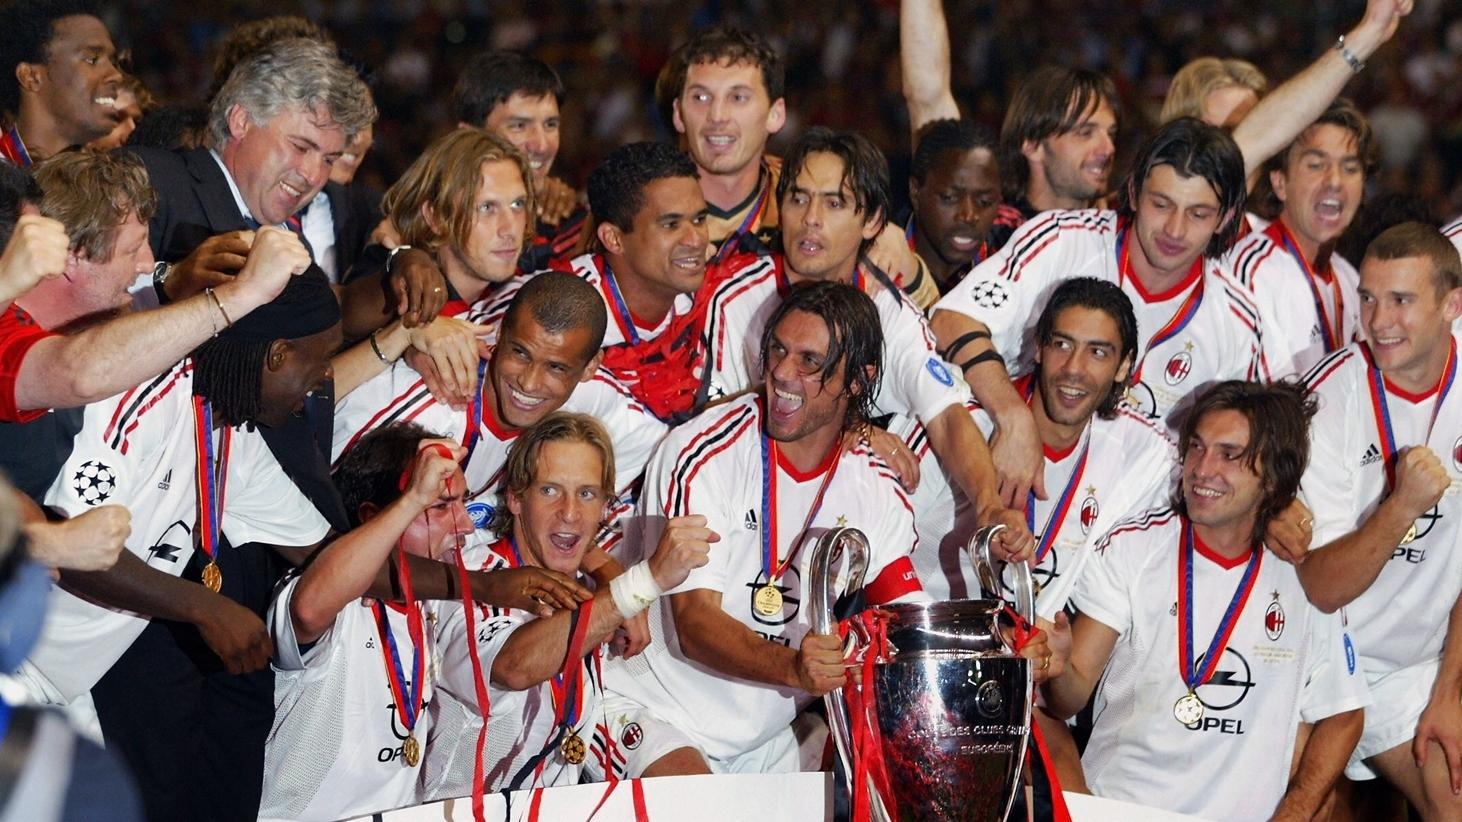 Inzaghi reflects on Milan's 2003 triumph   UEFA Champions League   UEFA.com